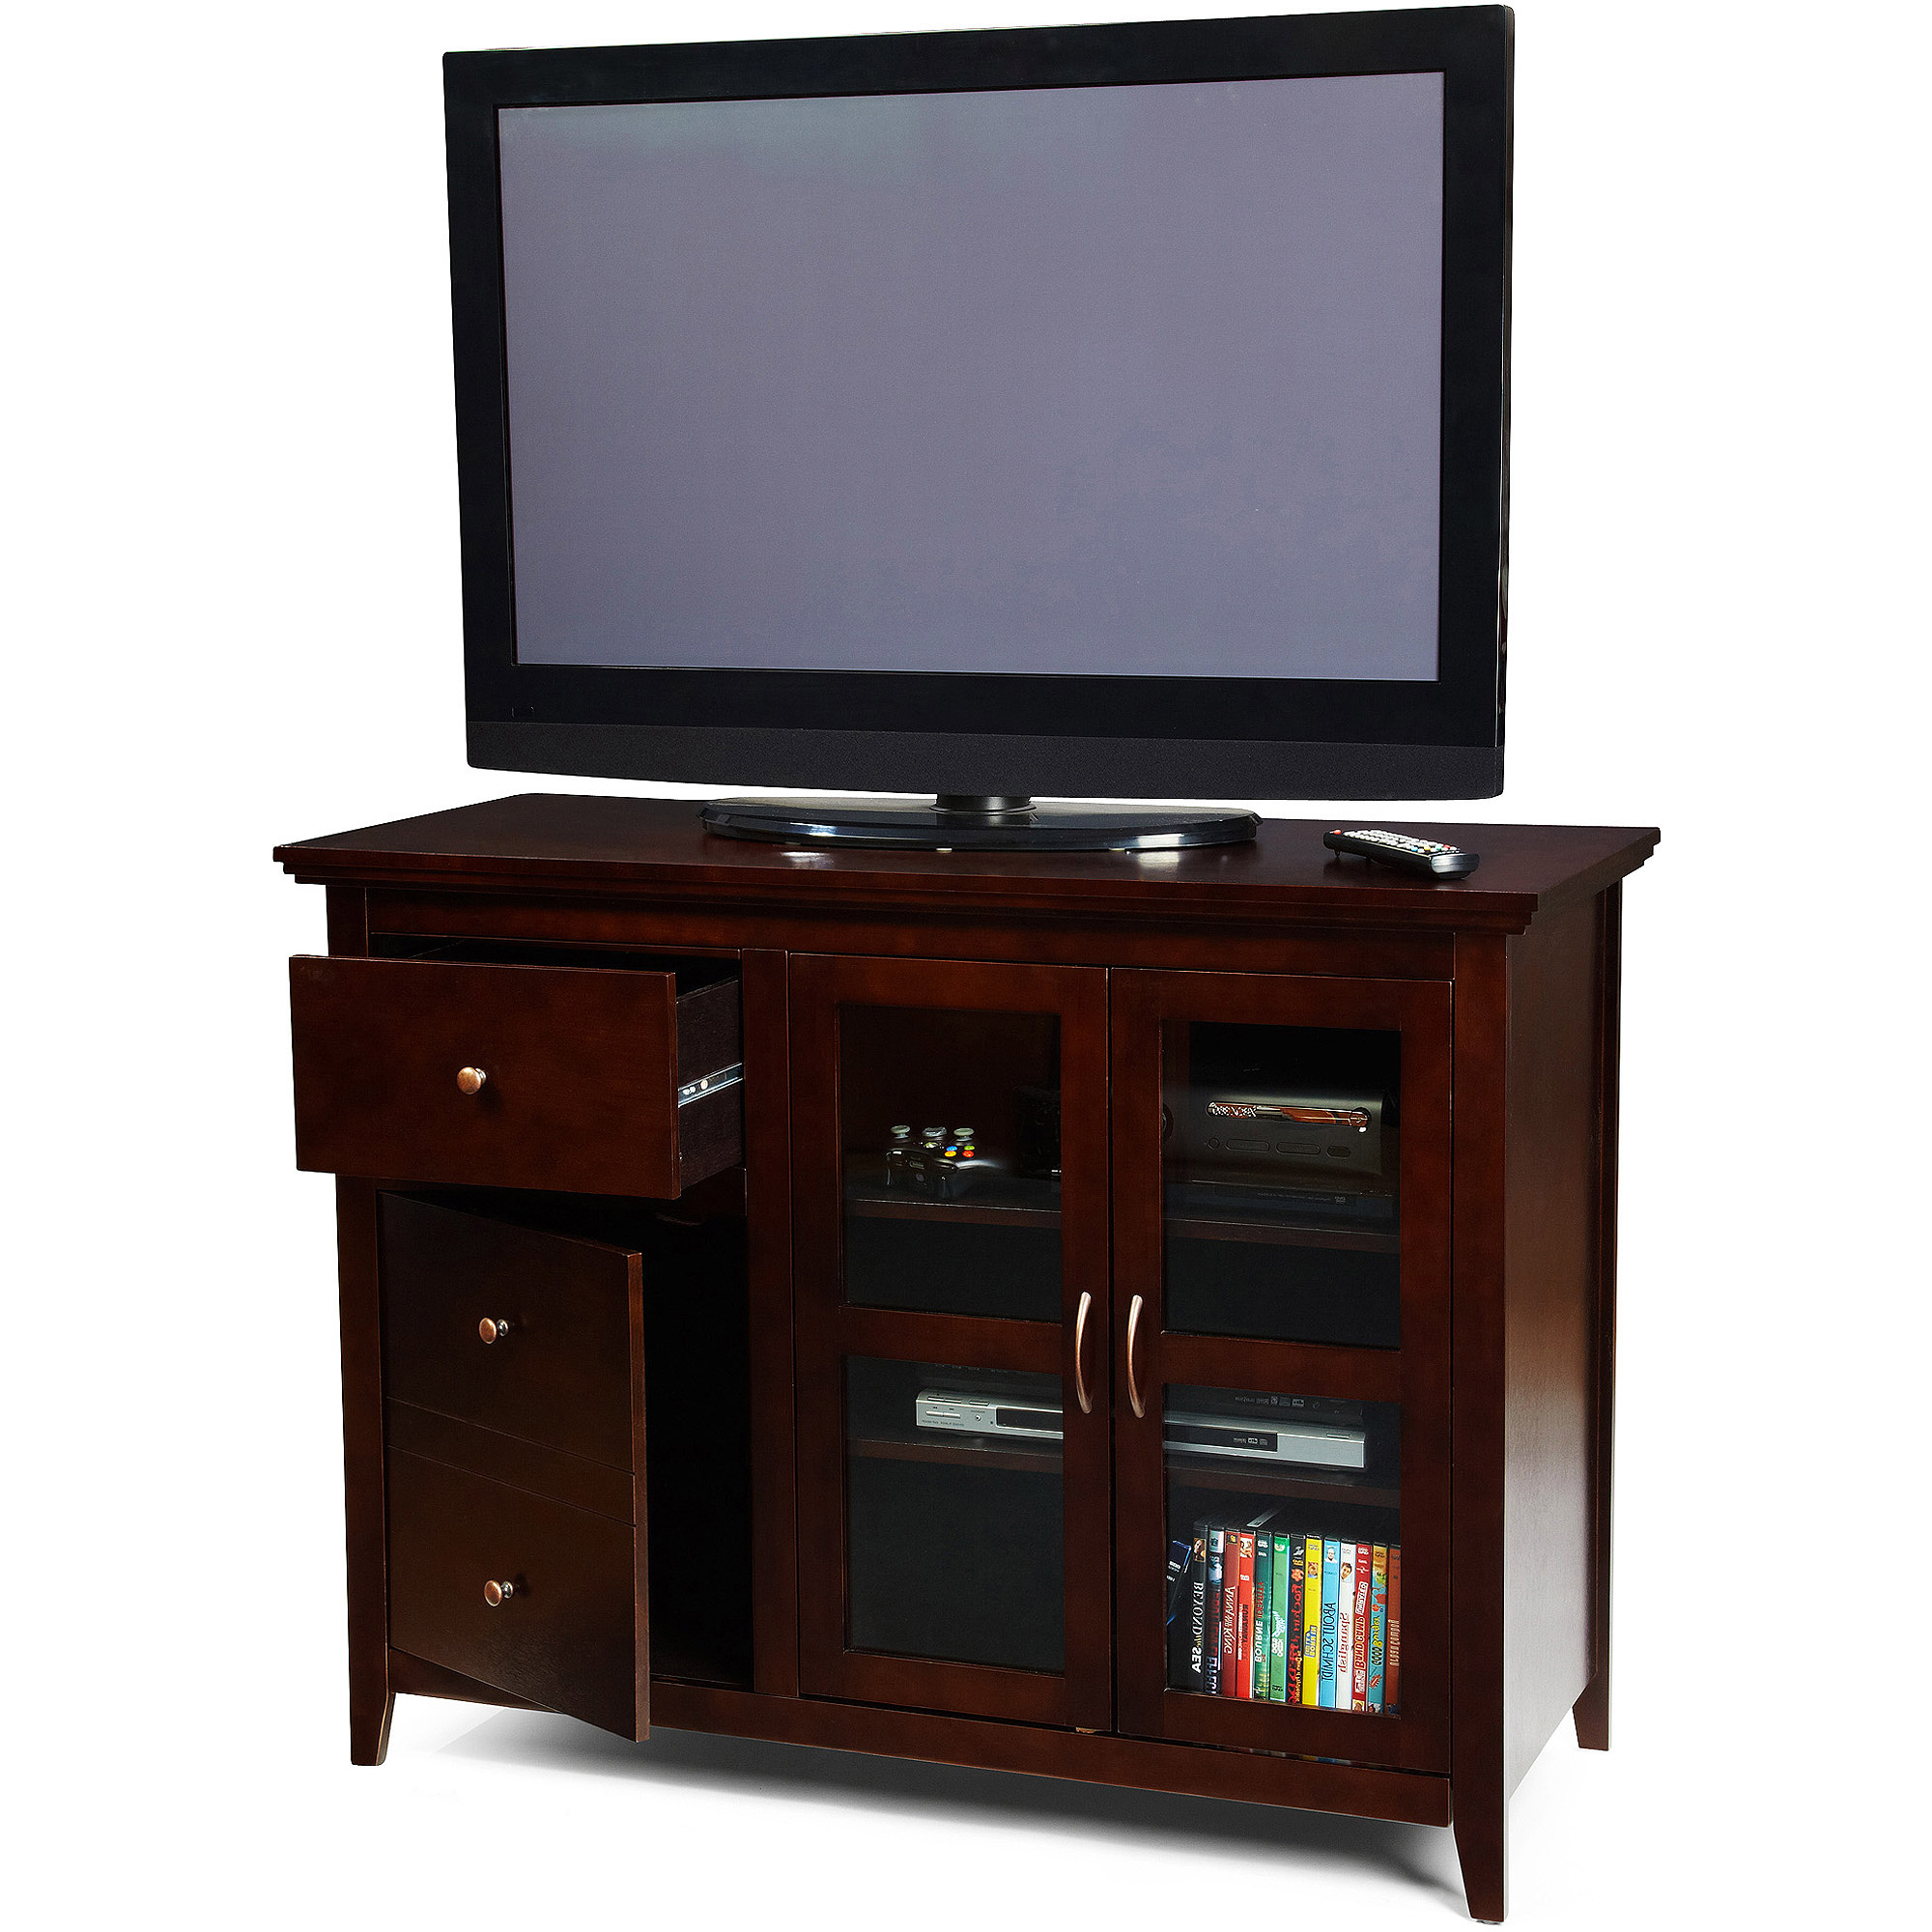 """Walker Edison Tv Stand For Tvs Up To 48"""", Multiple Colors Regarding Vasari Corner Flat Panel Tv Stands For Tvs Up To 48"""" Black (View 3 of 20)"""